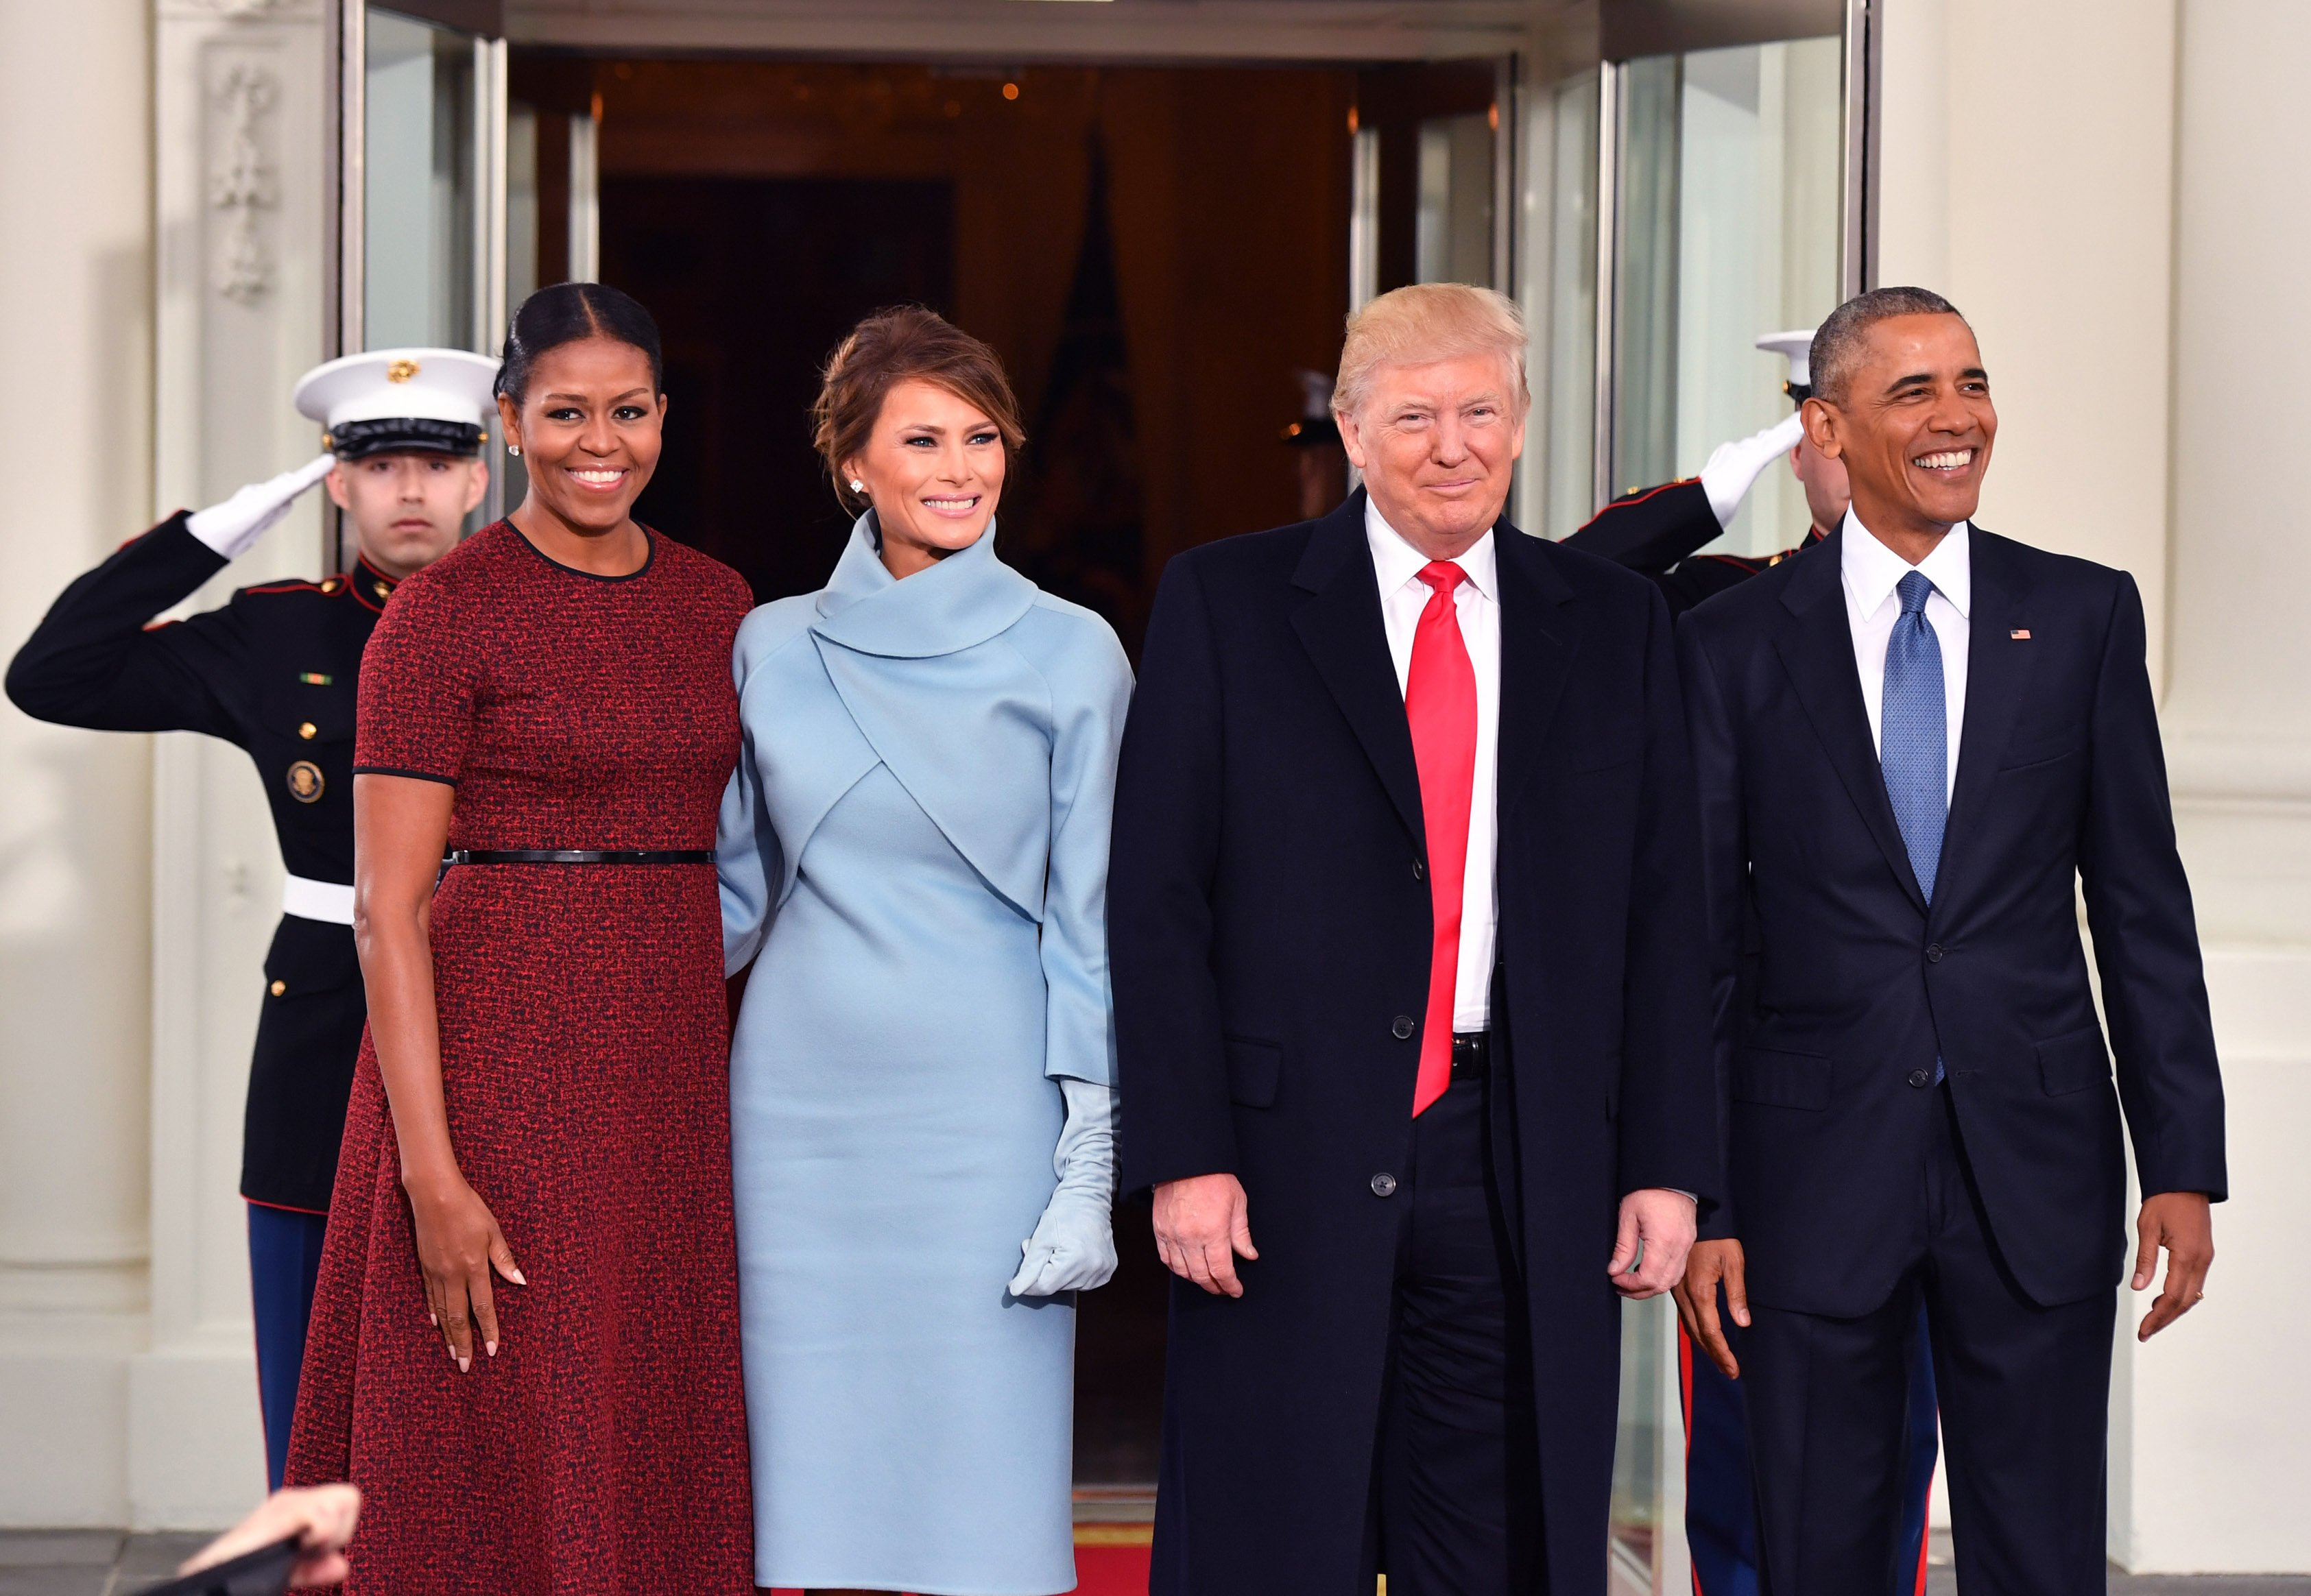 President Barack Obama and Michelle Obama pose with President-elect Donald Trump and wife Melania at the White House before the inauguration on January 20, 2017 in Washington, D.C